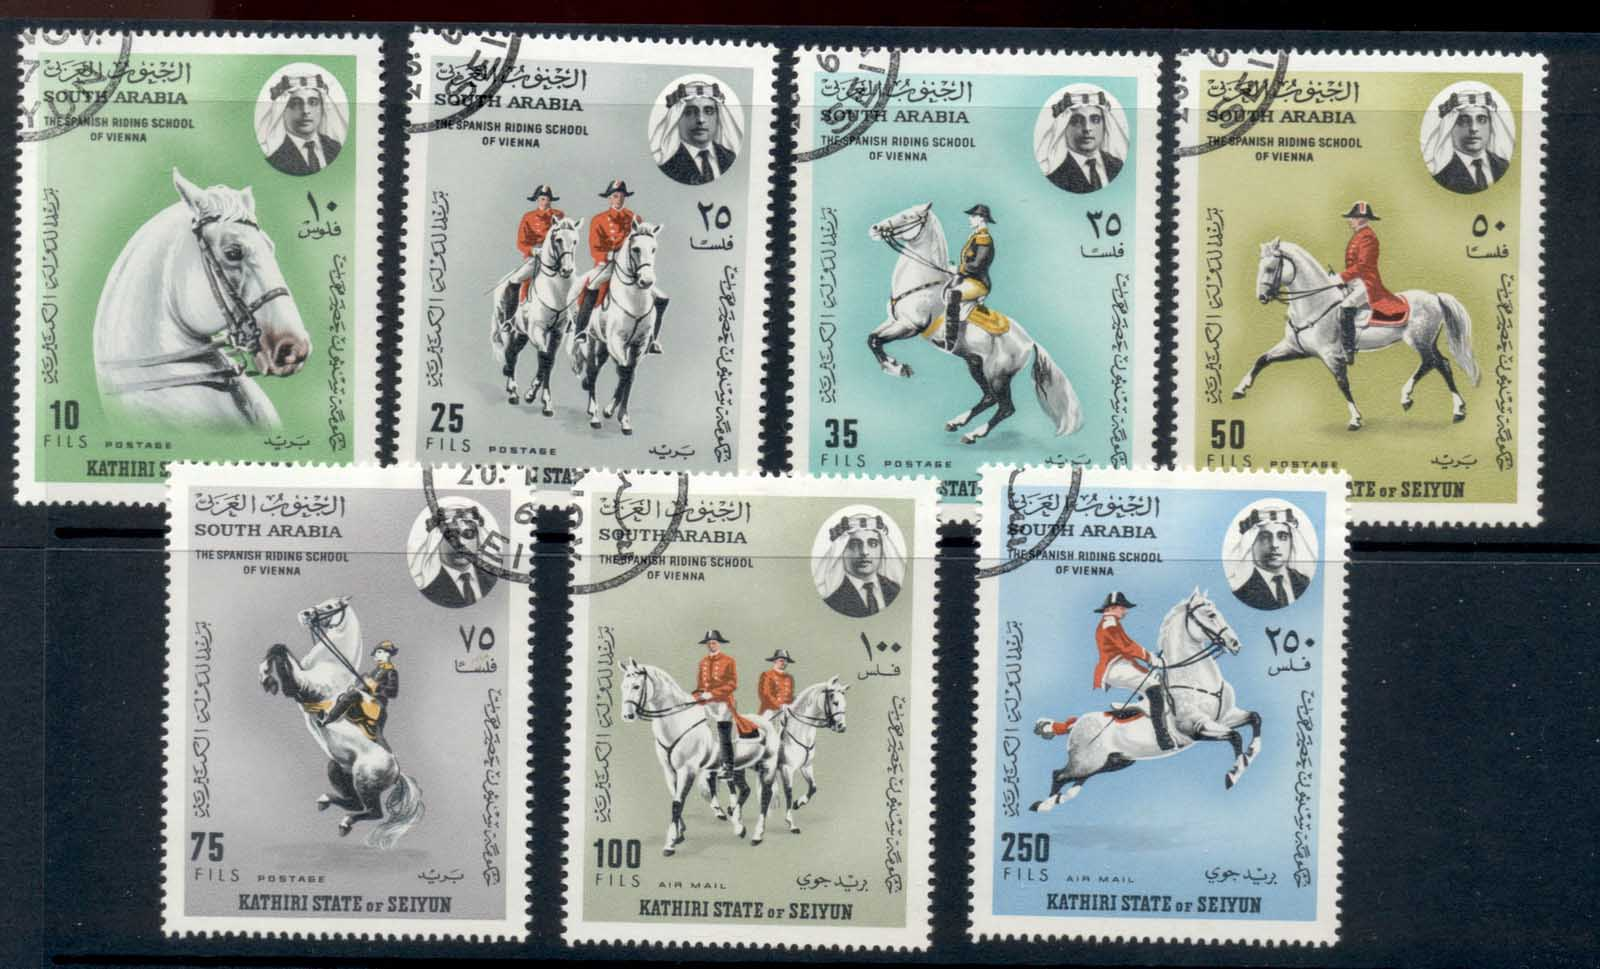 Aden Kathiri State of Seiyun 1967 Mi#150-156 Spanish Riding School Vienna CTO